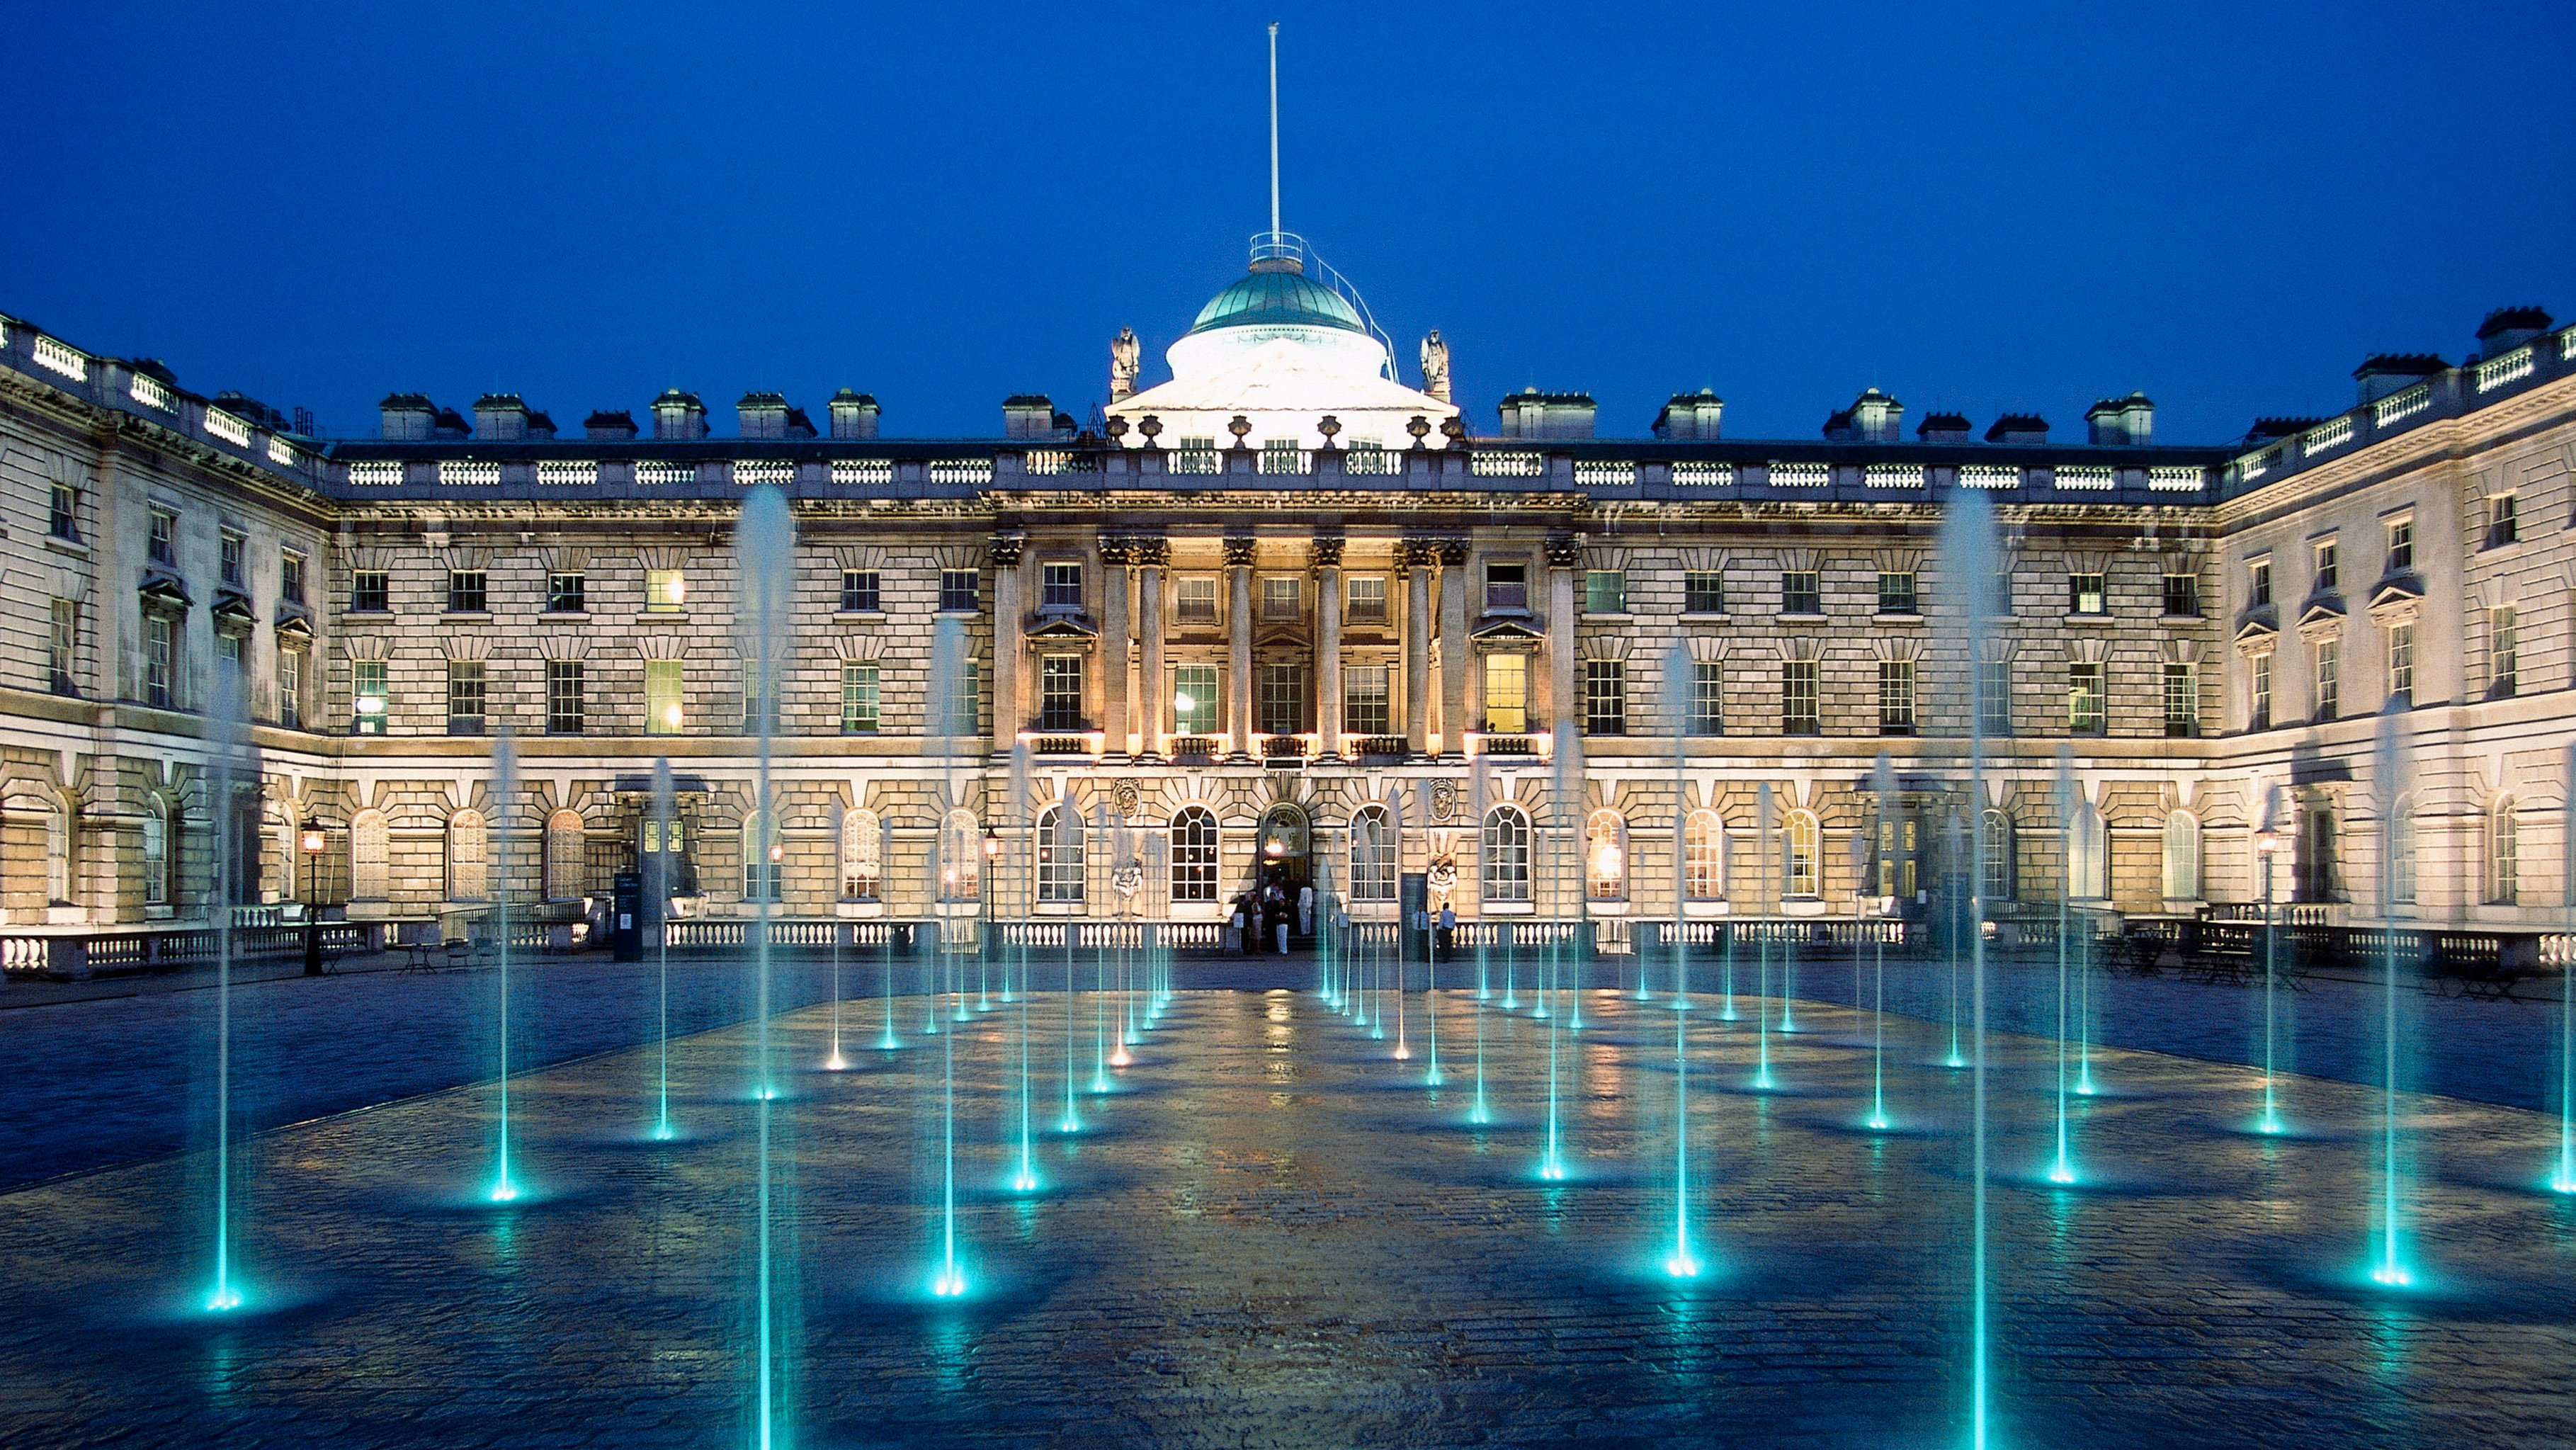 View of Somerset House at night, London, United Kingdom.